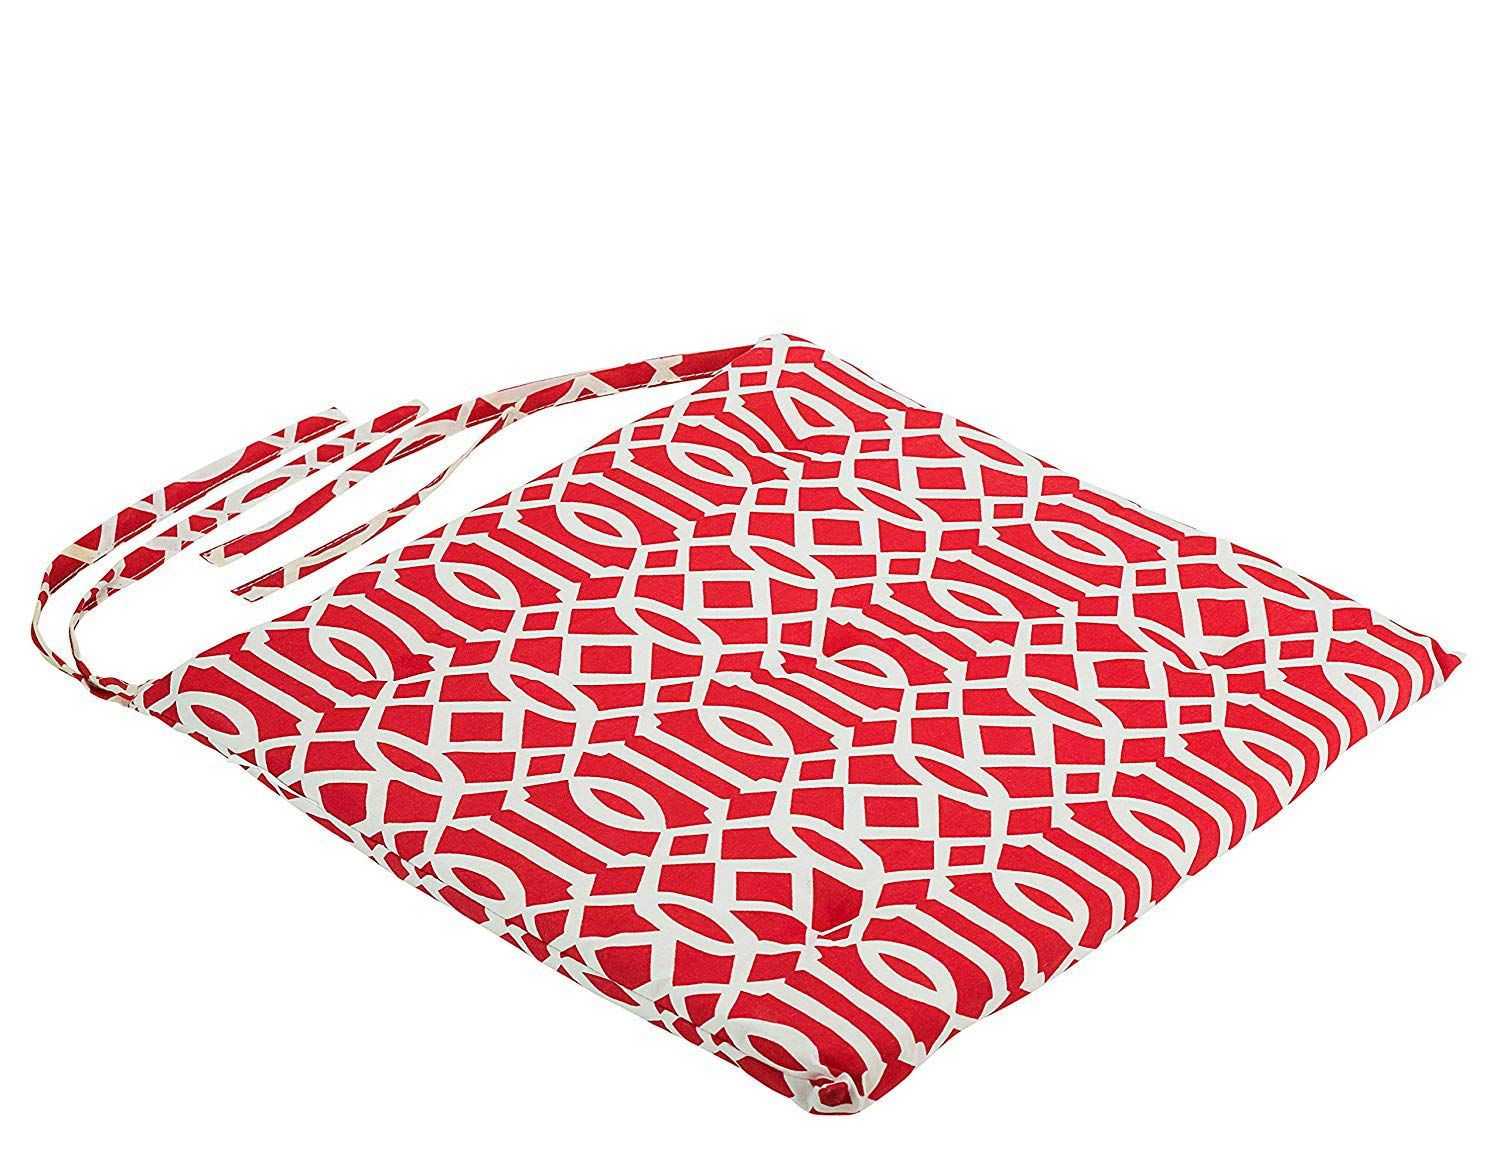 DecorRack 4 Seat Cushion Pads 100% Cotton Cover with Ties, Ideal Chair Pad for Indoor Use, Reversible Square Kitchen Seat Cover Chair Pillows, Modern Red White Design 1 inch Lightweight (Pack of 4)